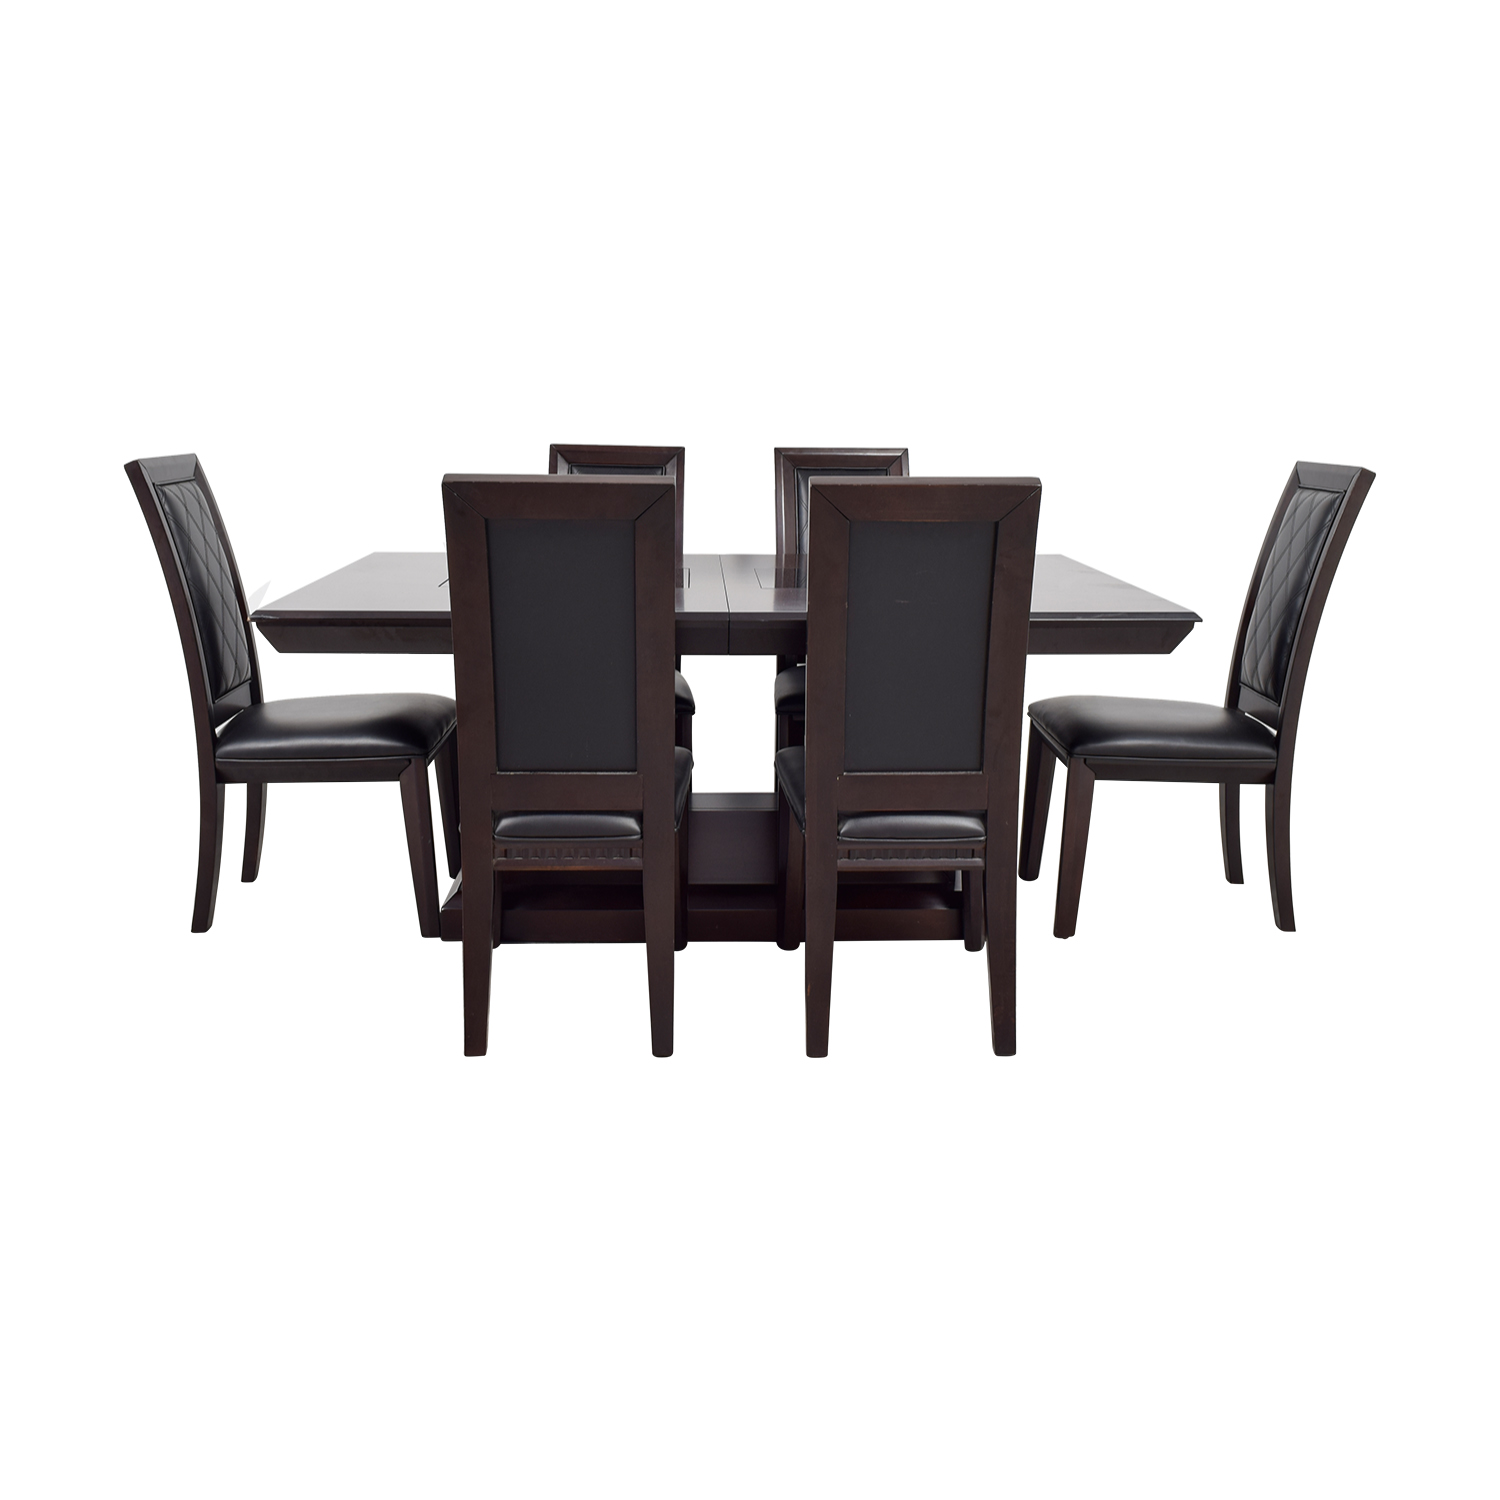 Najarian Najarian Brentwood Dining Set with Black Leather Chairs dimensions